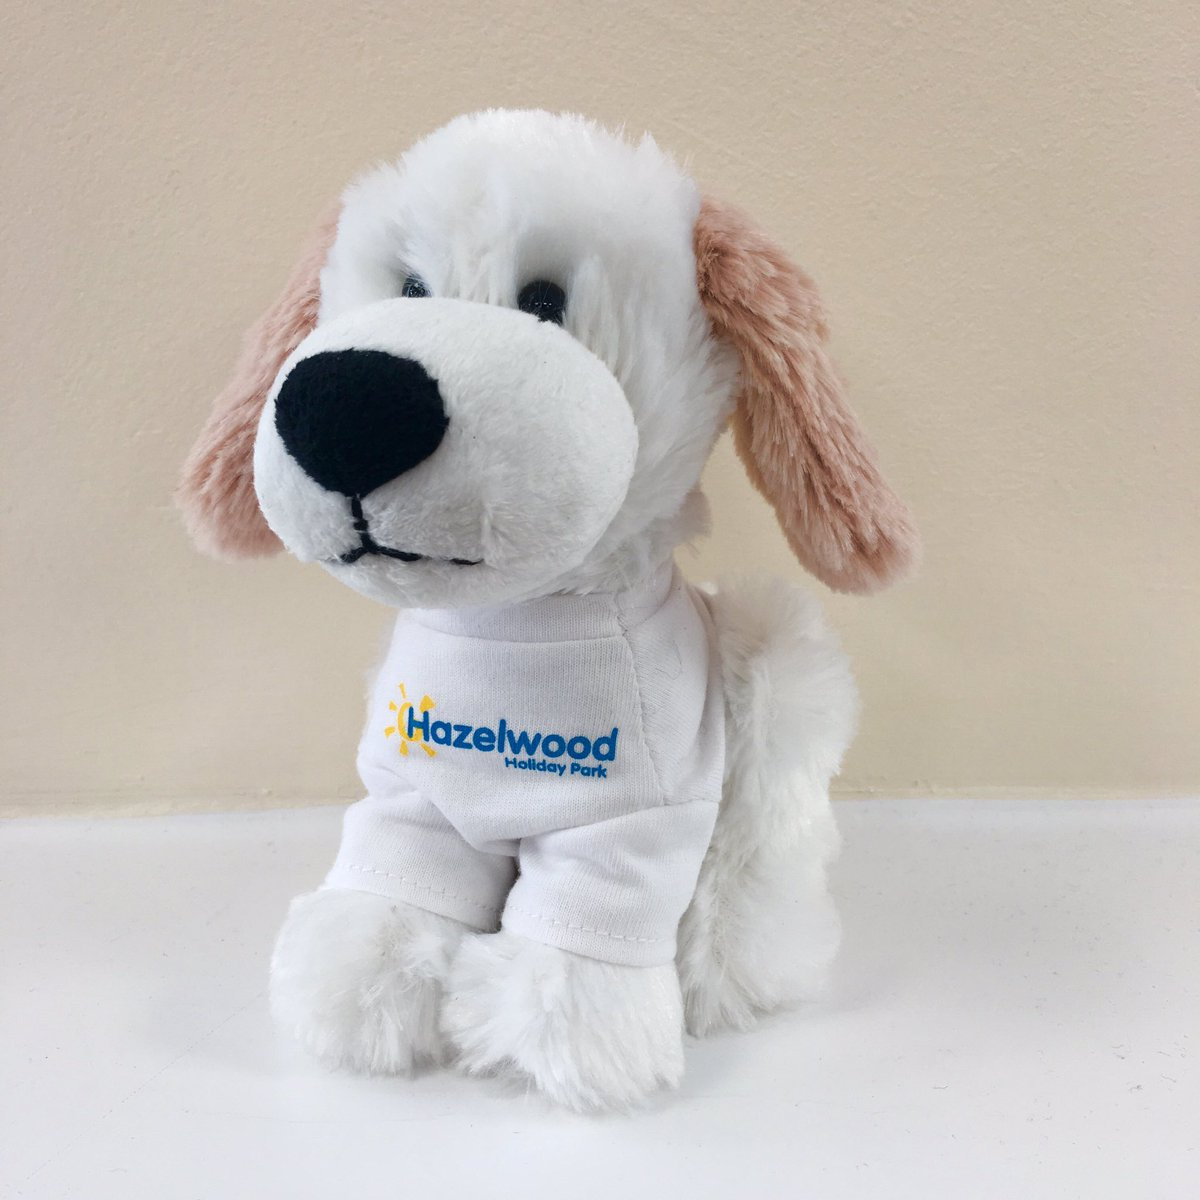 What do we think of this little fella? New @HazelwoodPark mascot - shall we place the order? #dogfriendly #holidays #dawlishwarren #devon<br>http://pic.twitter.com/gZUA73YV26